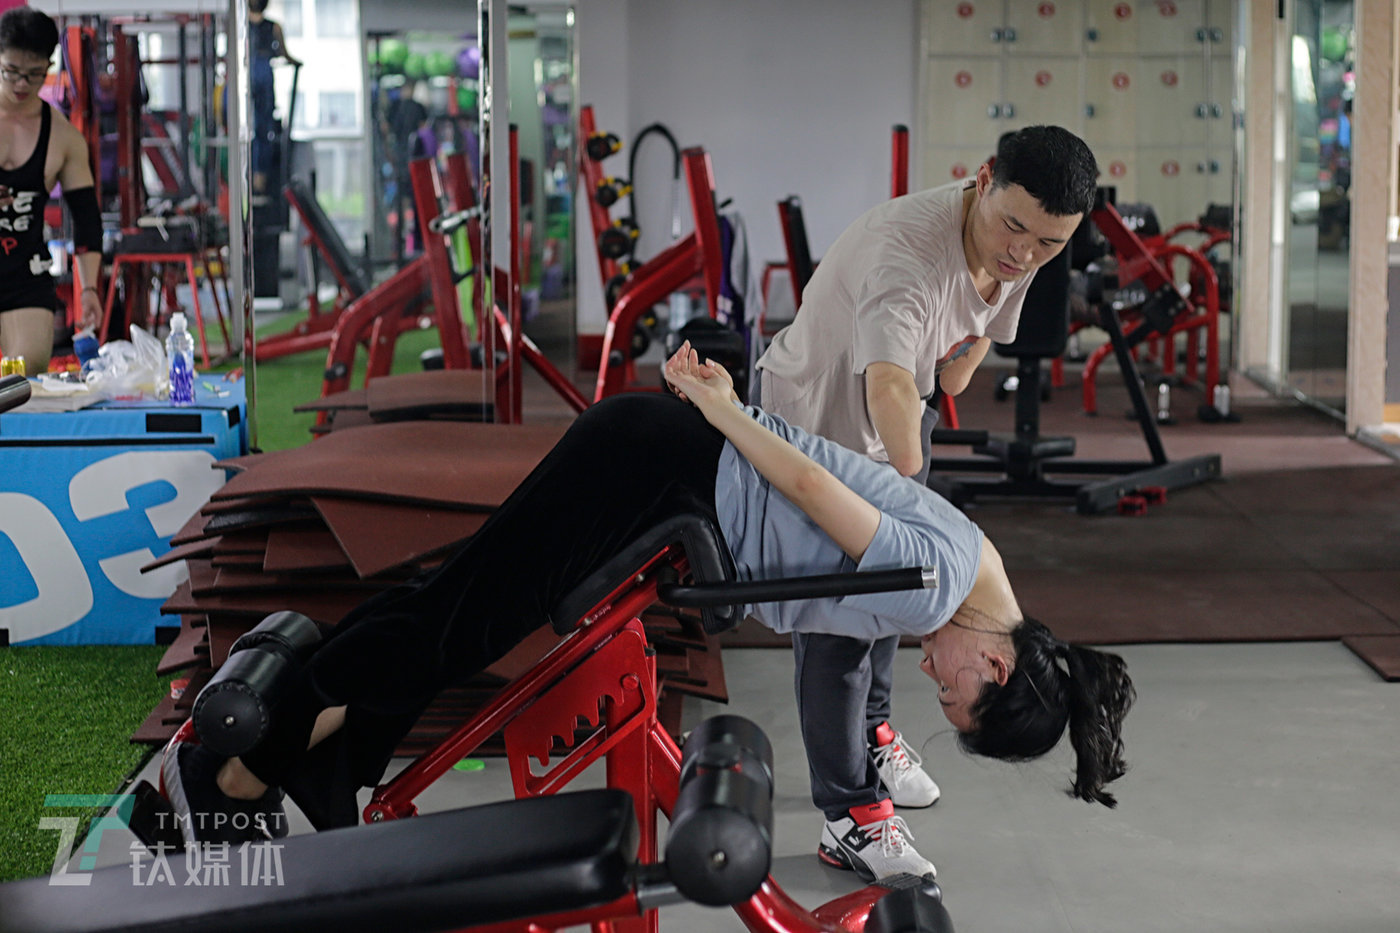 June 20, Jinhua, Zhejiang Province. Ni Mincheng gives a private lesson to a member of his gym.